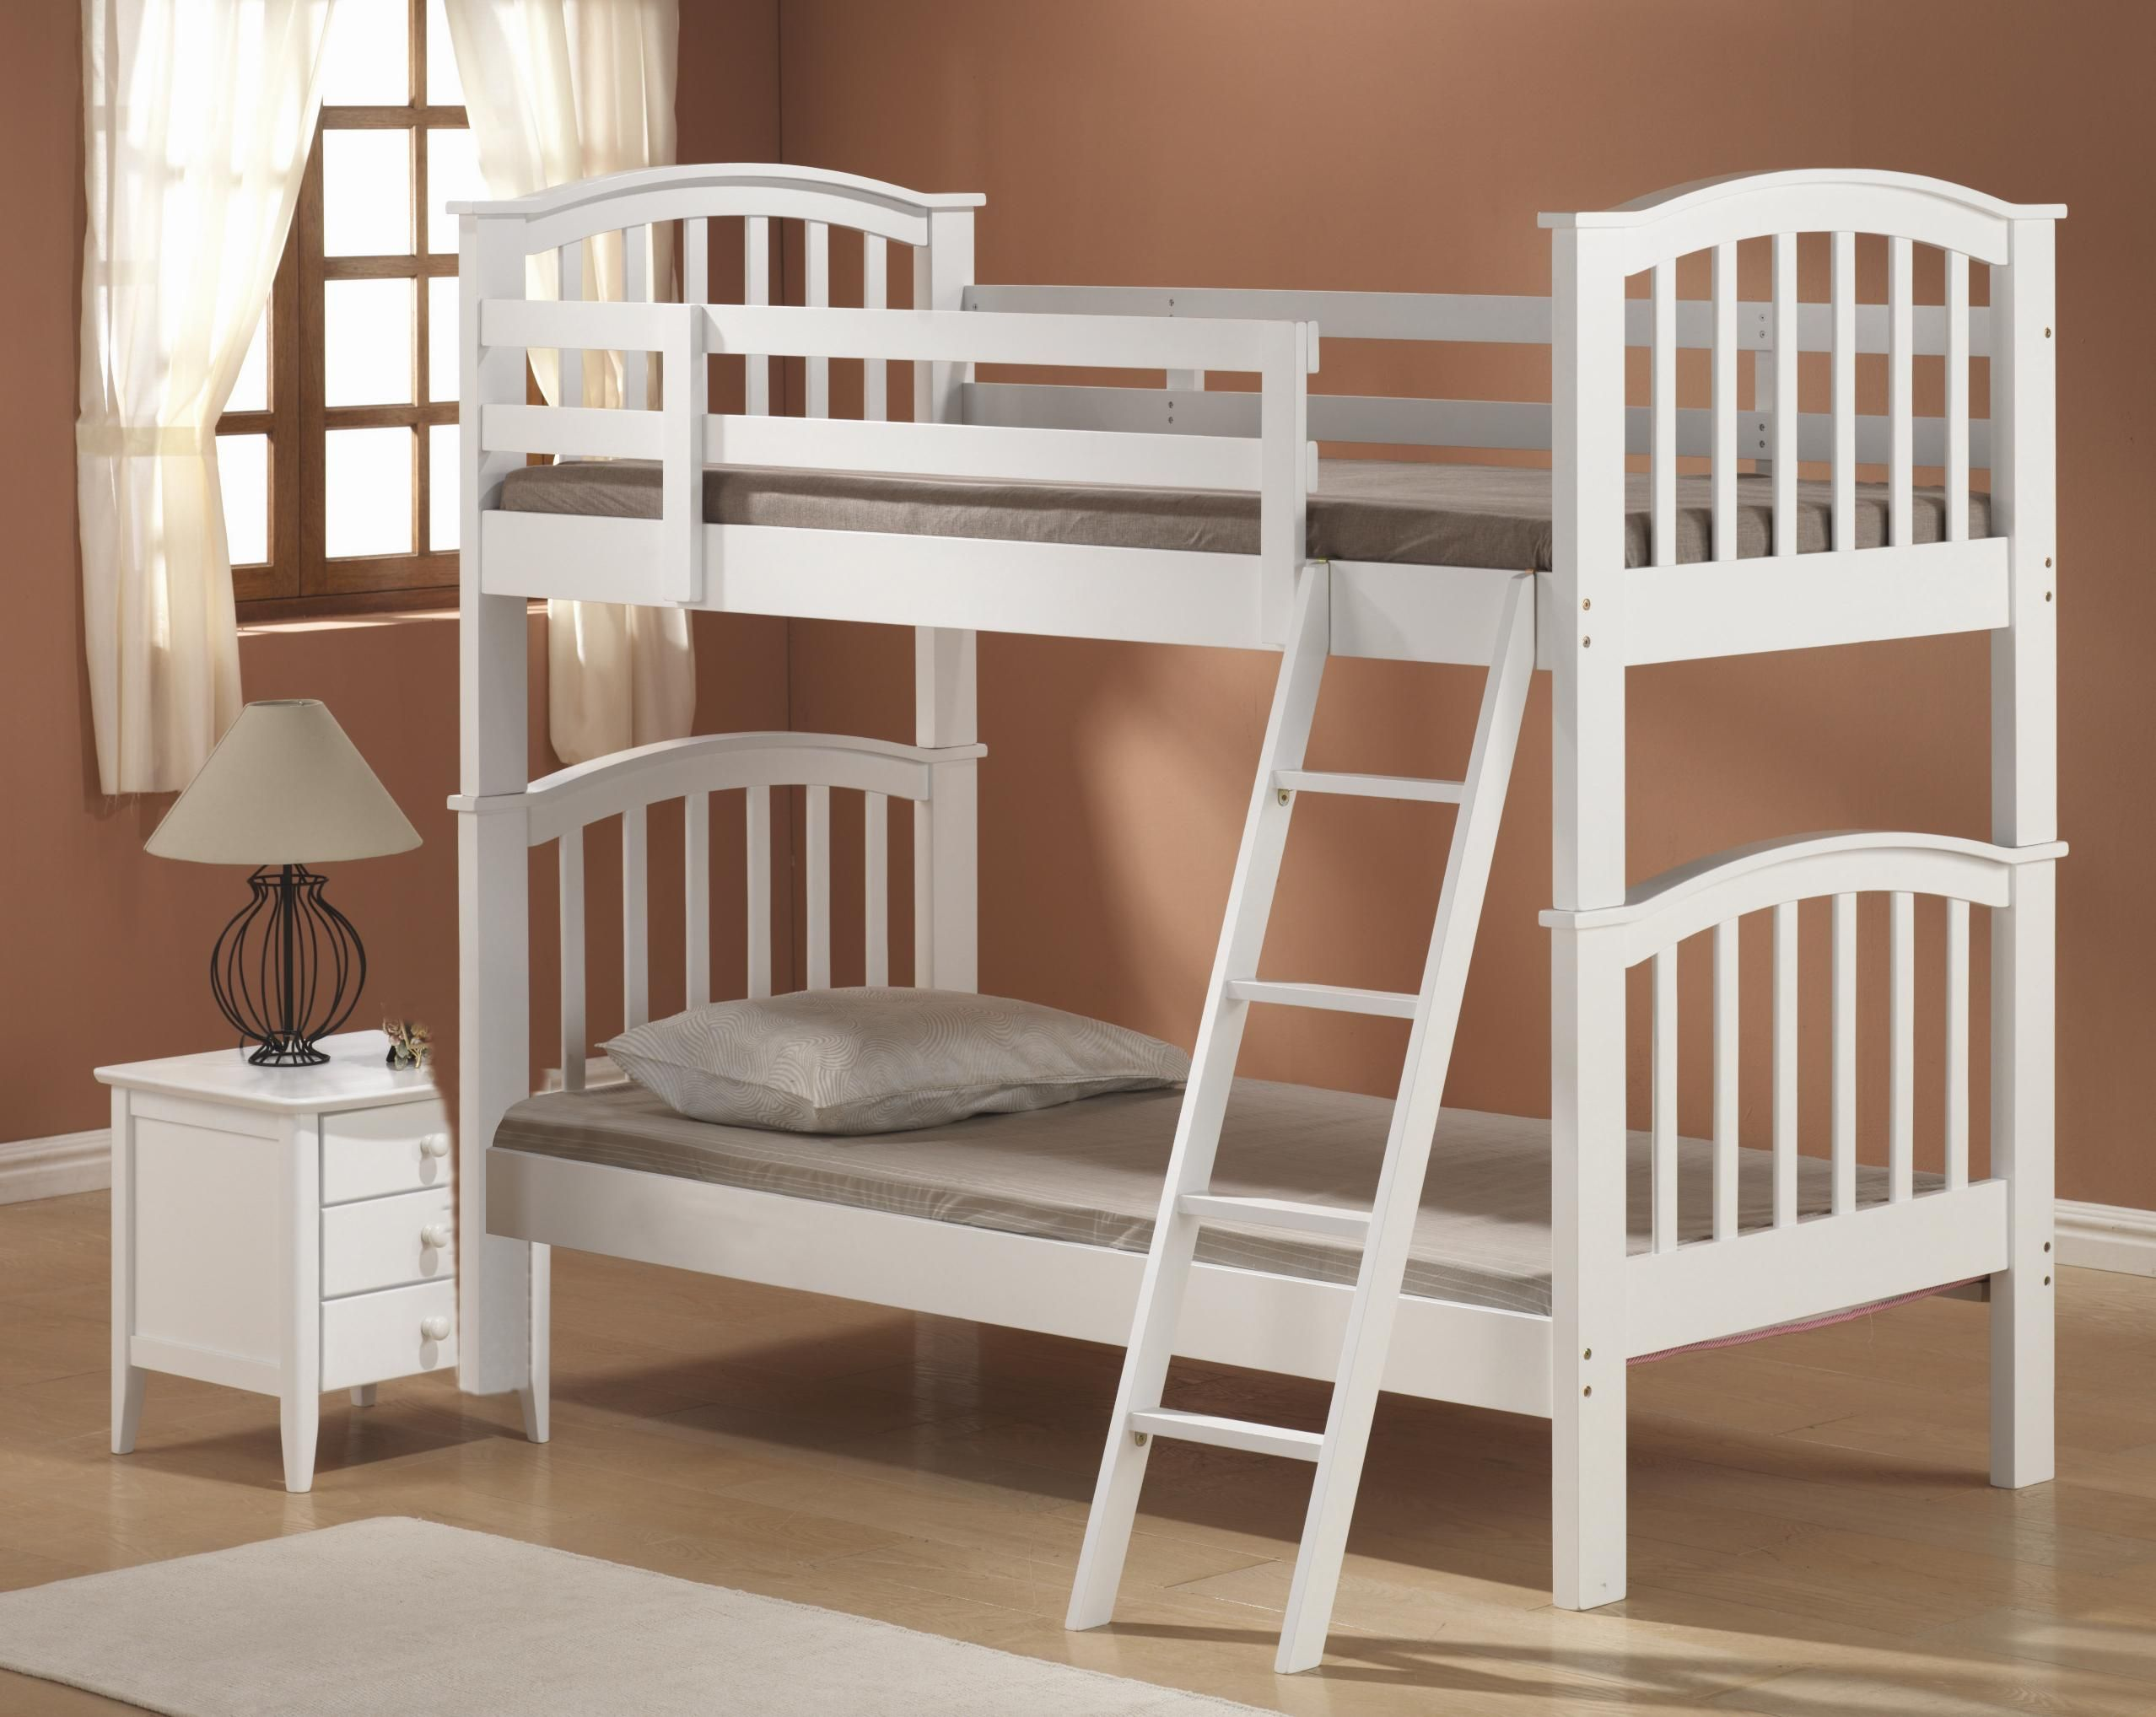 Acme Furniture: San Marino Collection Twin/Twin Bunk Bed #bunkbed #kidsbeds